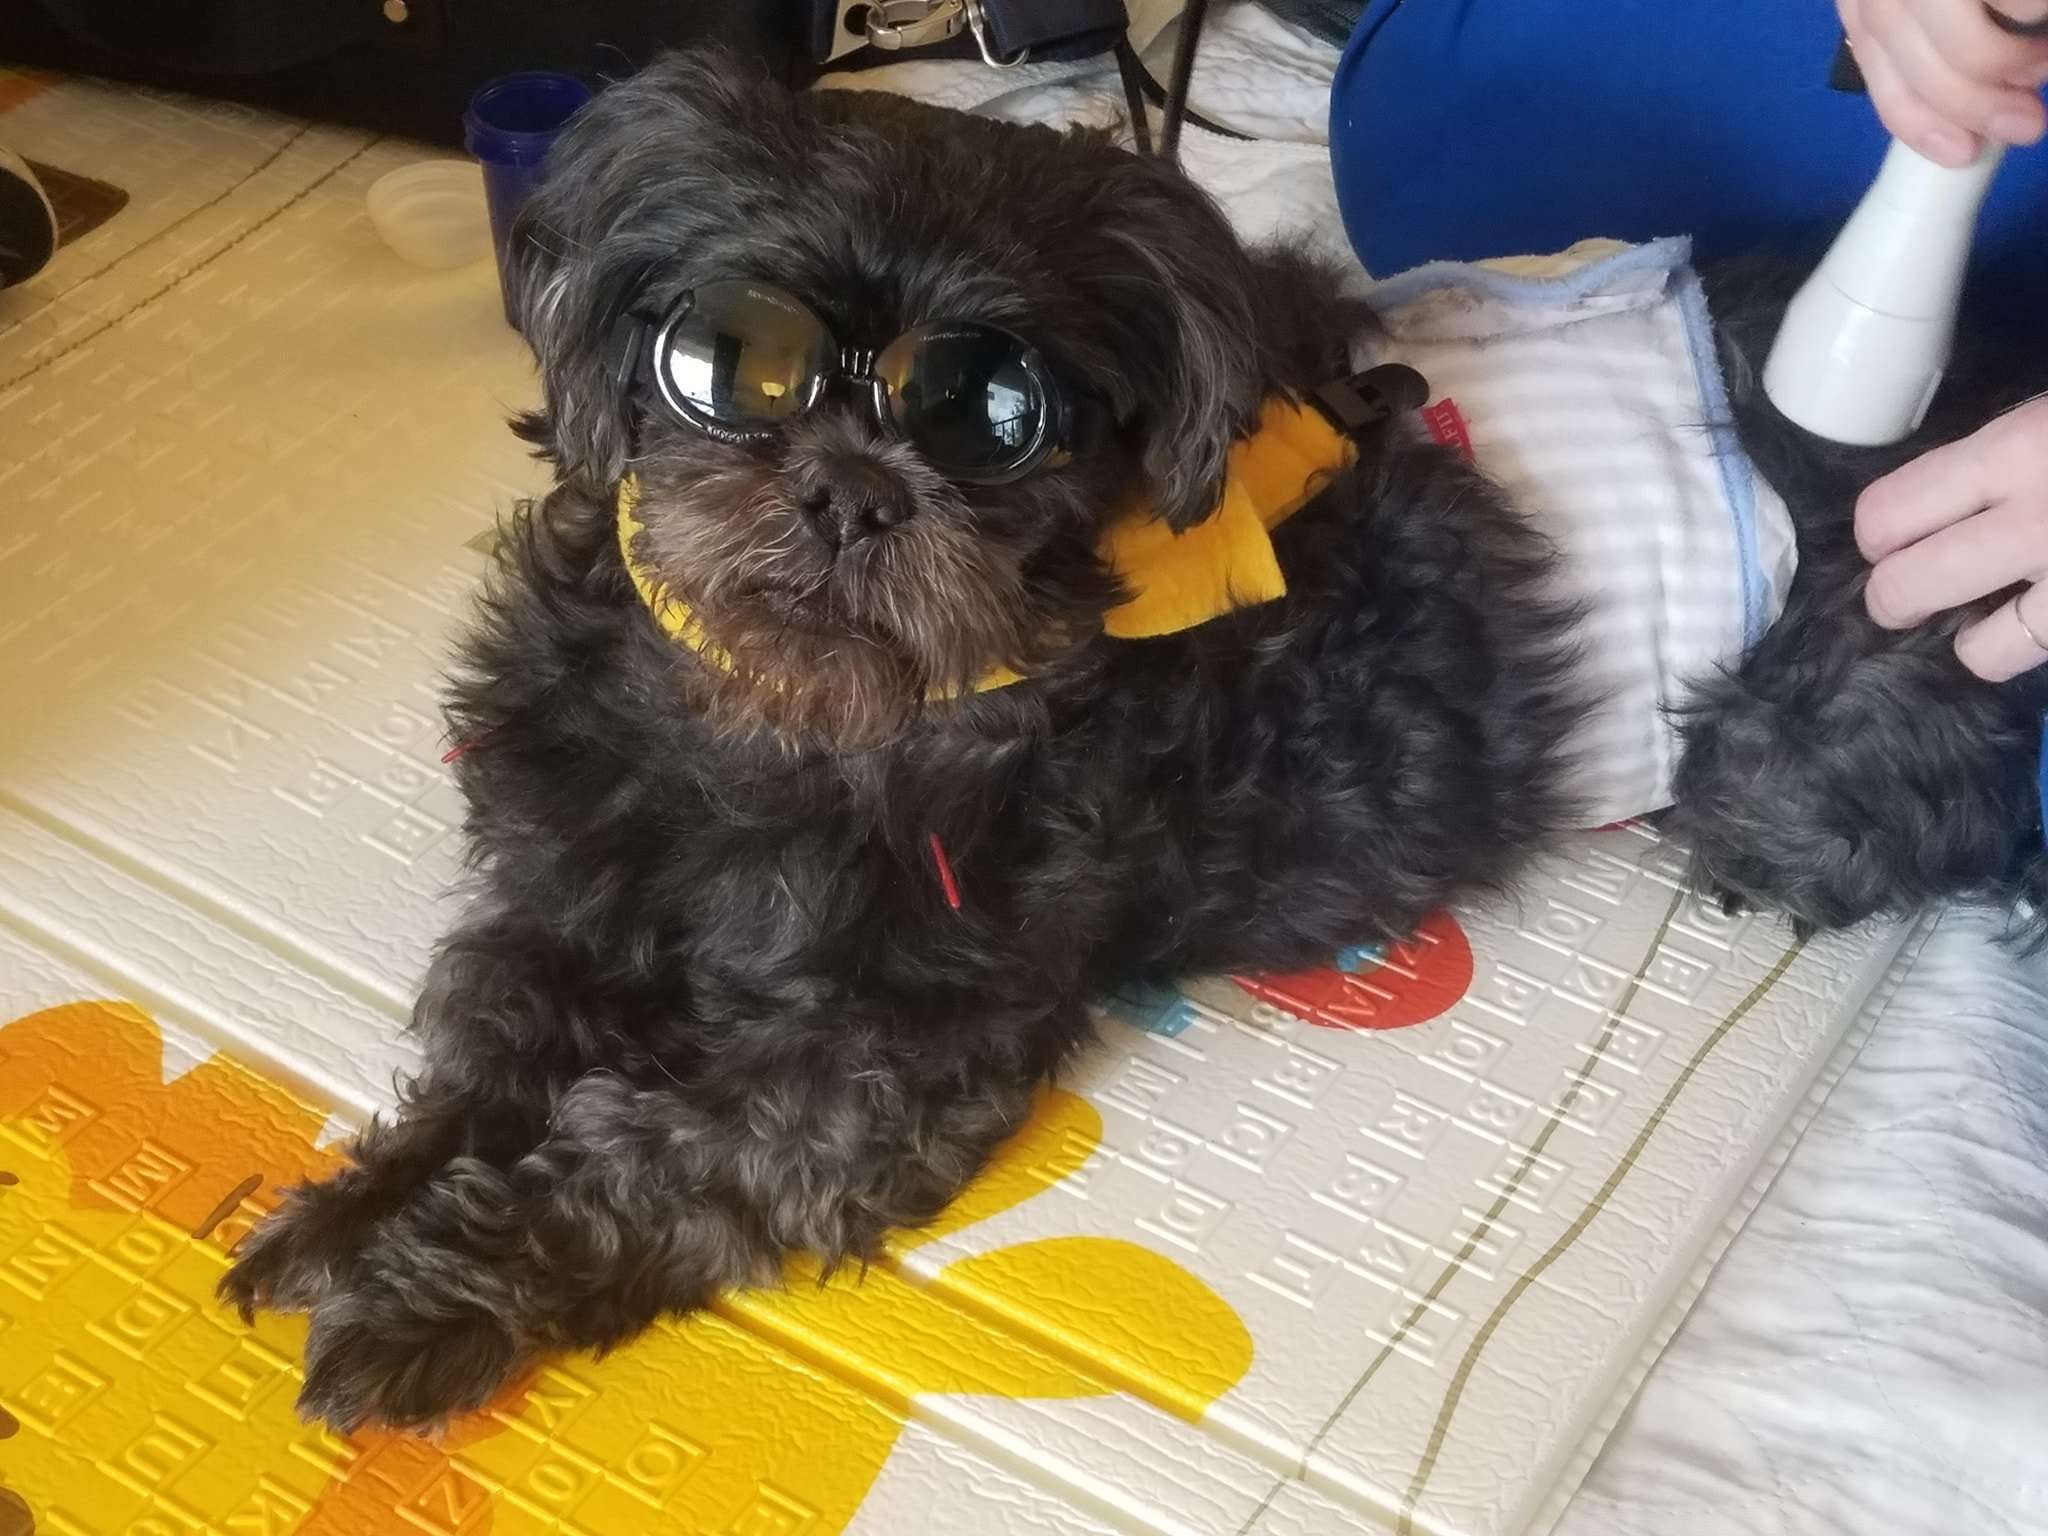 Teddy Bear Turner receiving laser therapy and acupuncture